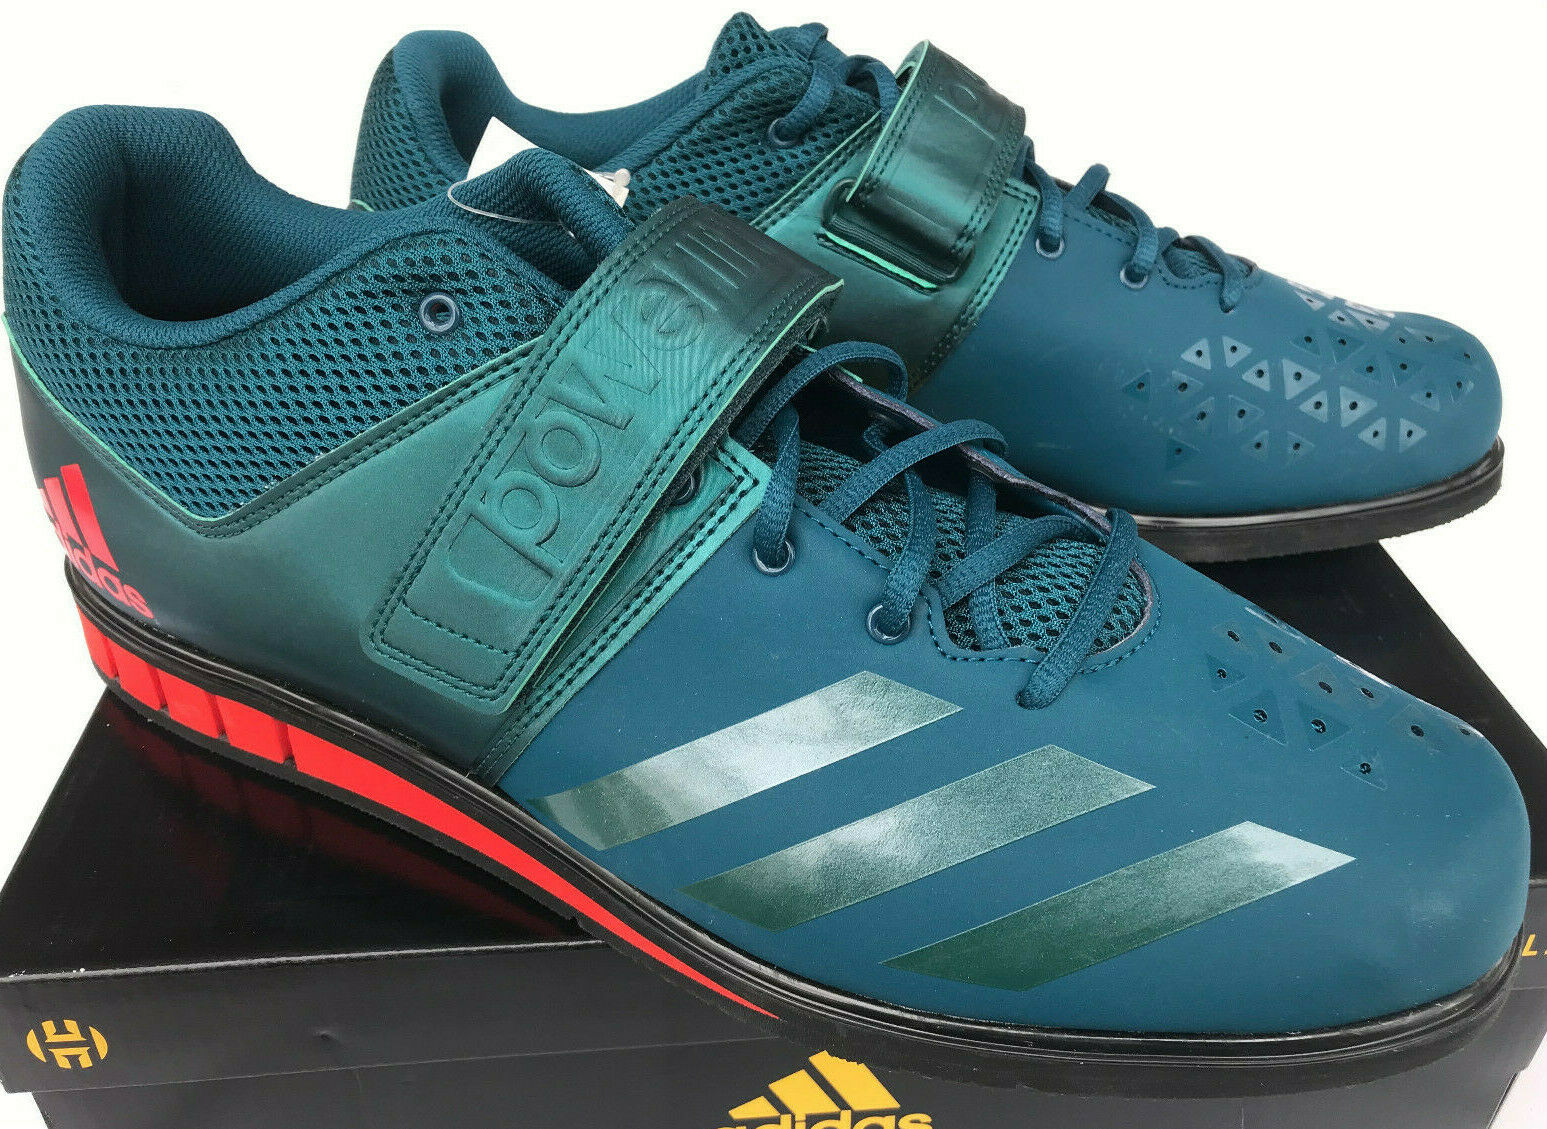 Adidas Powerlift 3.1 Weightlifting BA8014 Arnold USA Petrol shoes Men's 14.5 new